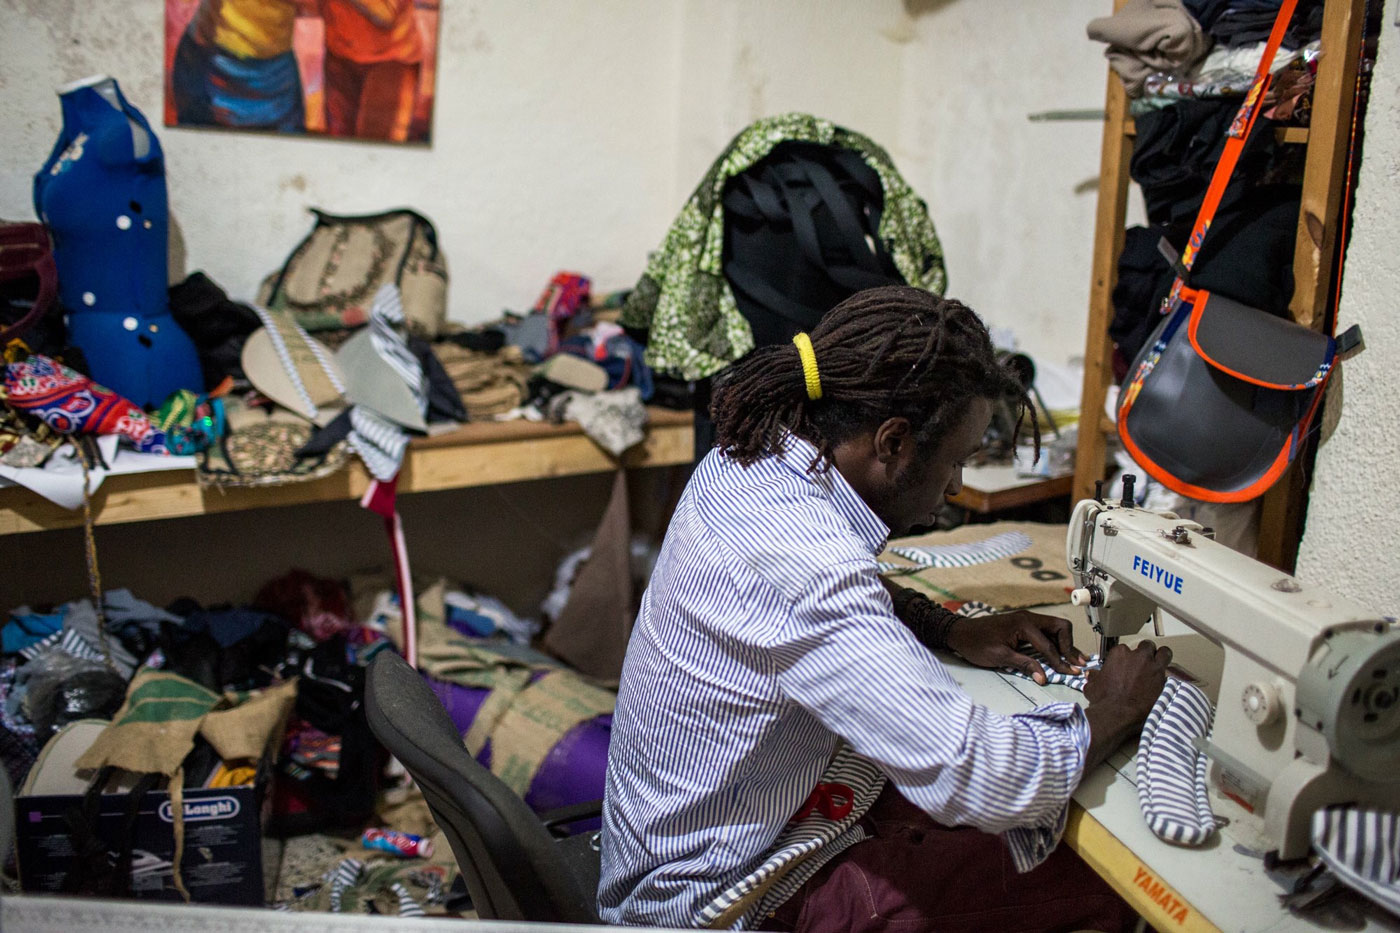 Recycled bags imagined in a refugee camp |The Switchers